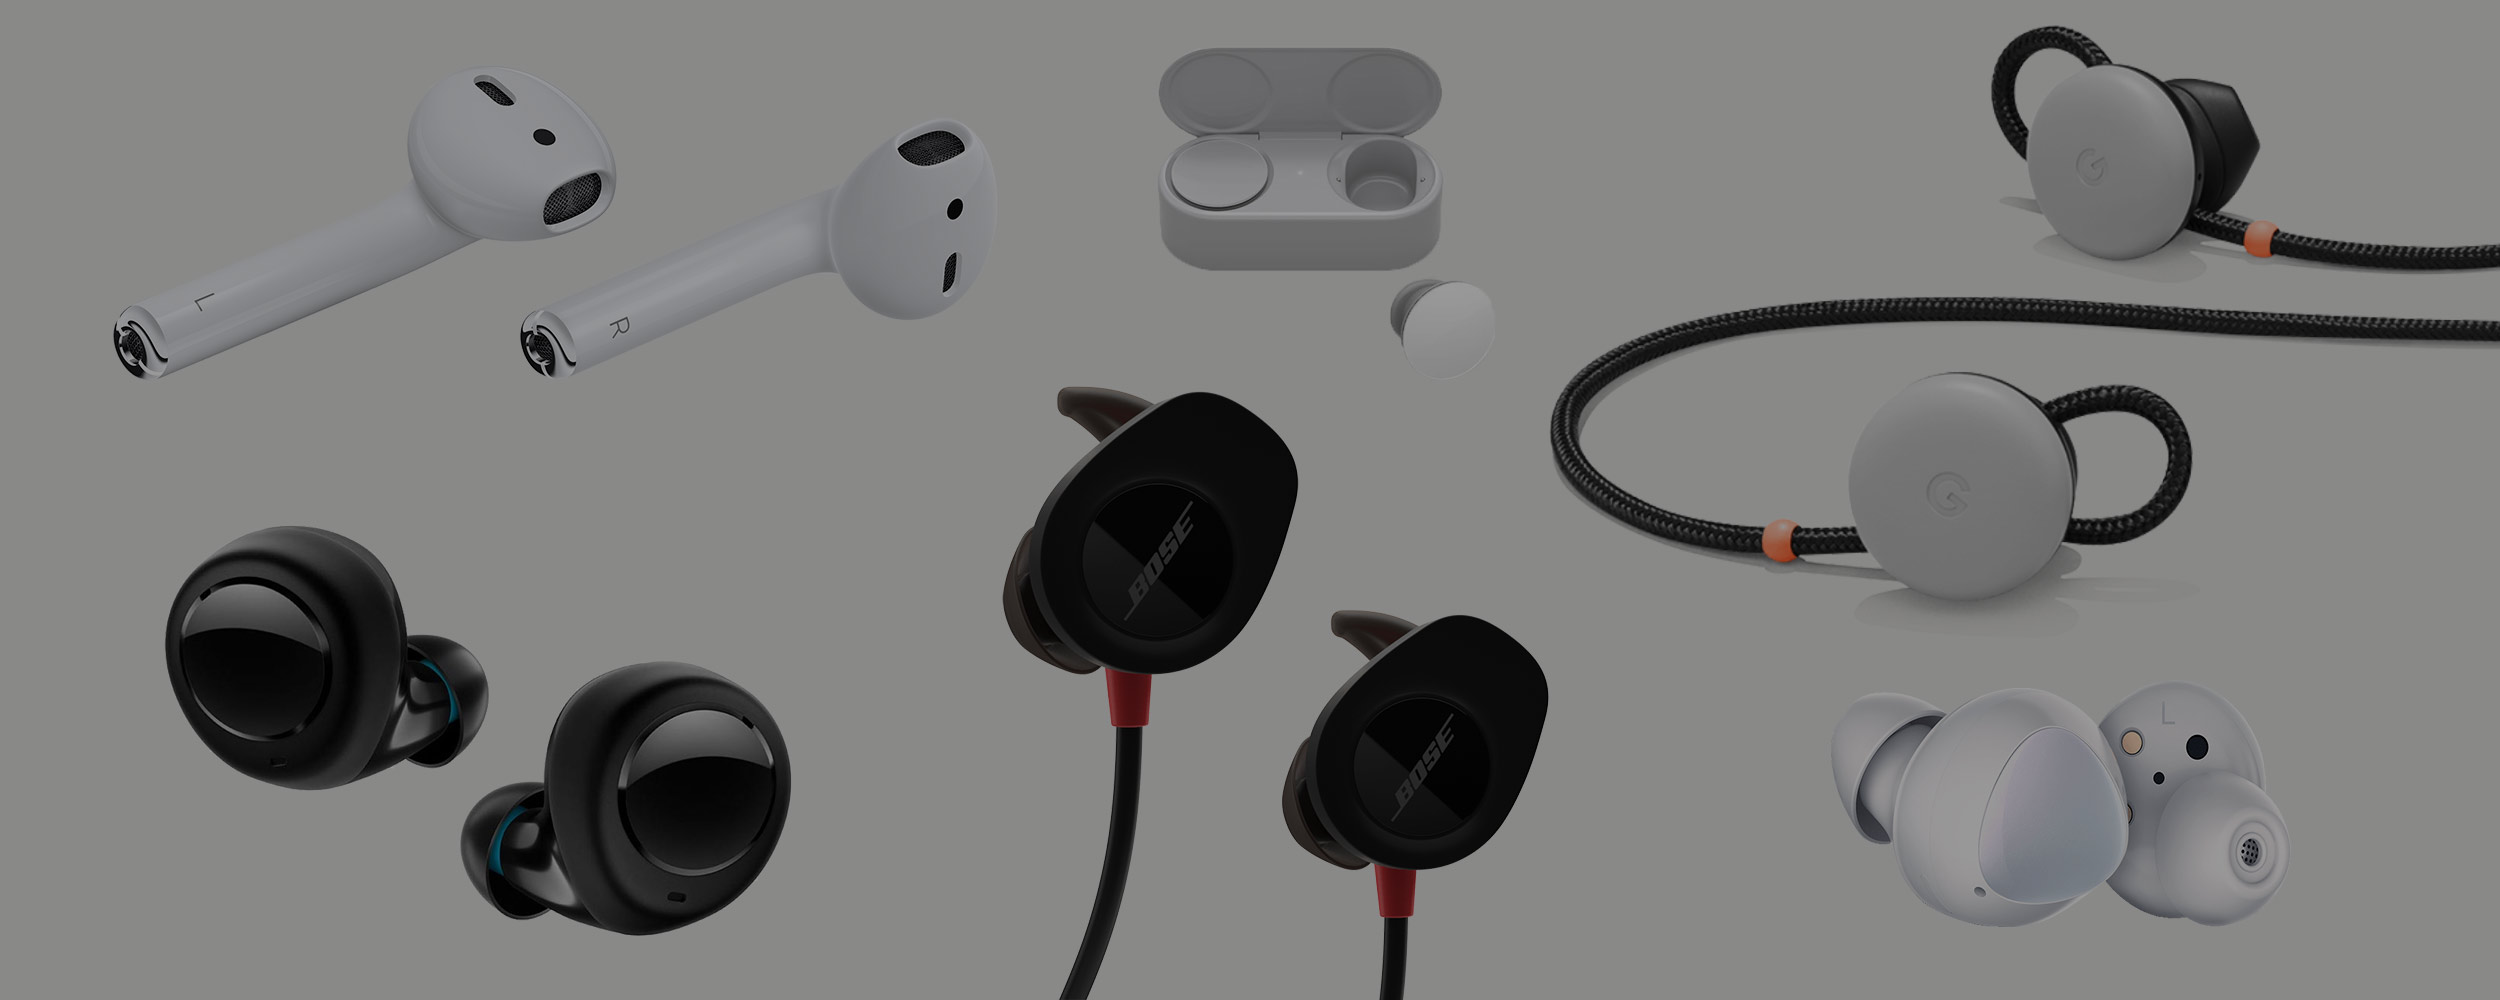 A look at the various earbuds in the industry: Apple Airpods, Microsoft Surface Buds, Google Pixel Buds, and more.